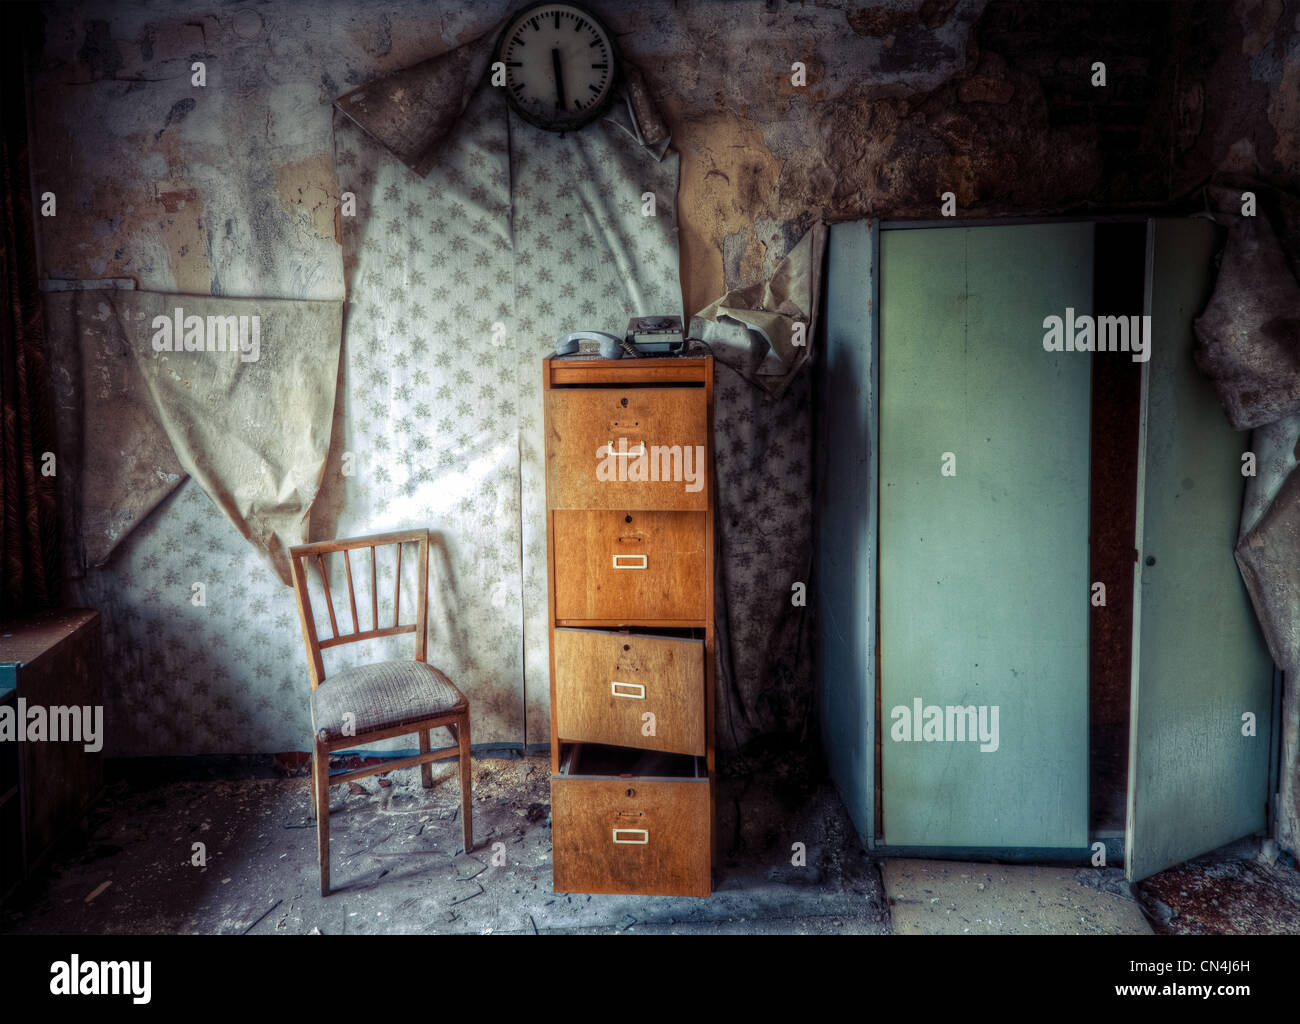 Abandoned building with chair and filing cabinet - Stock Image